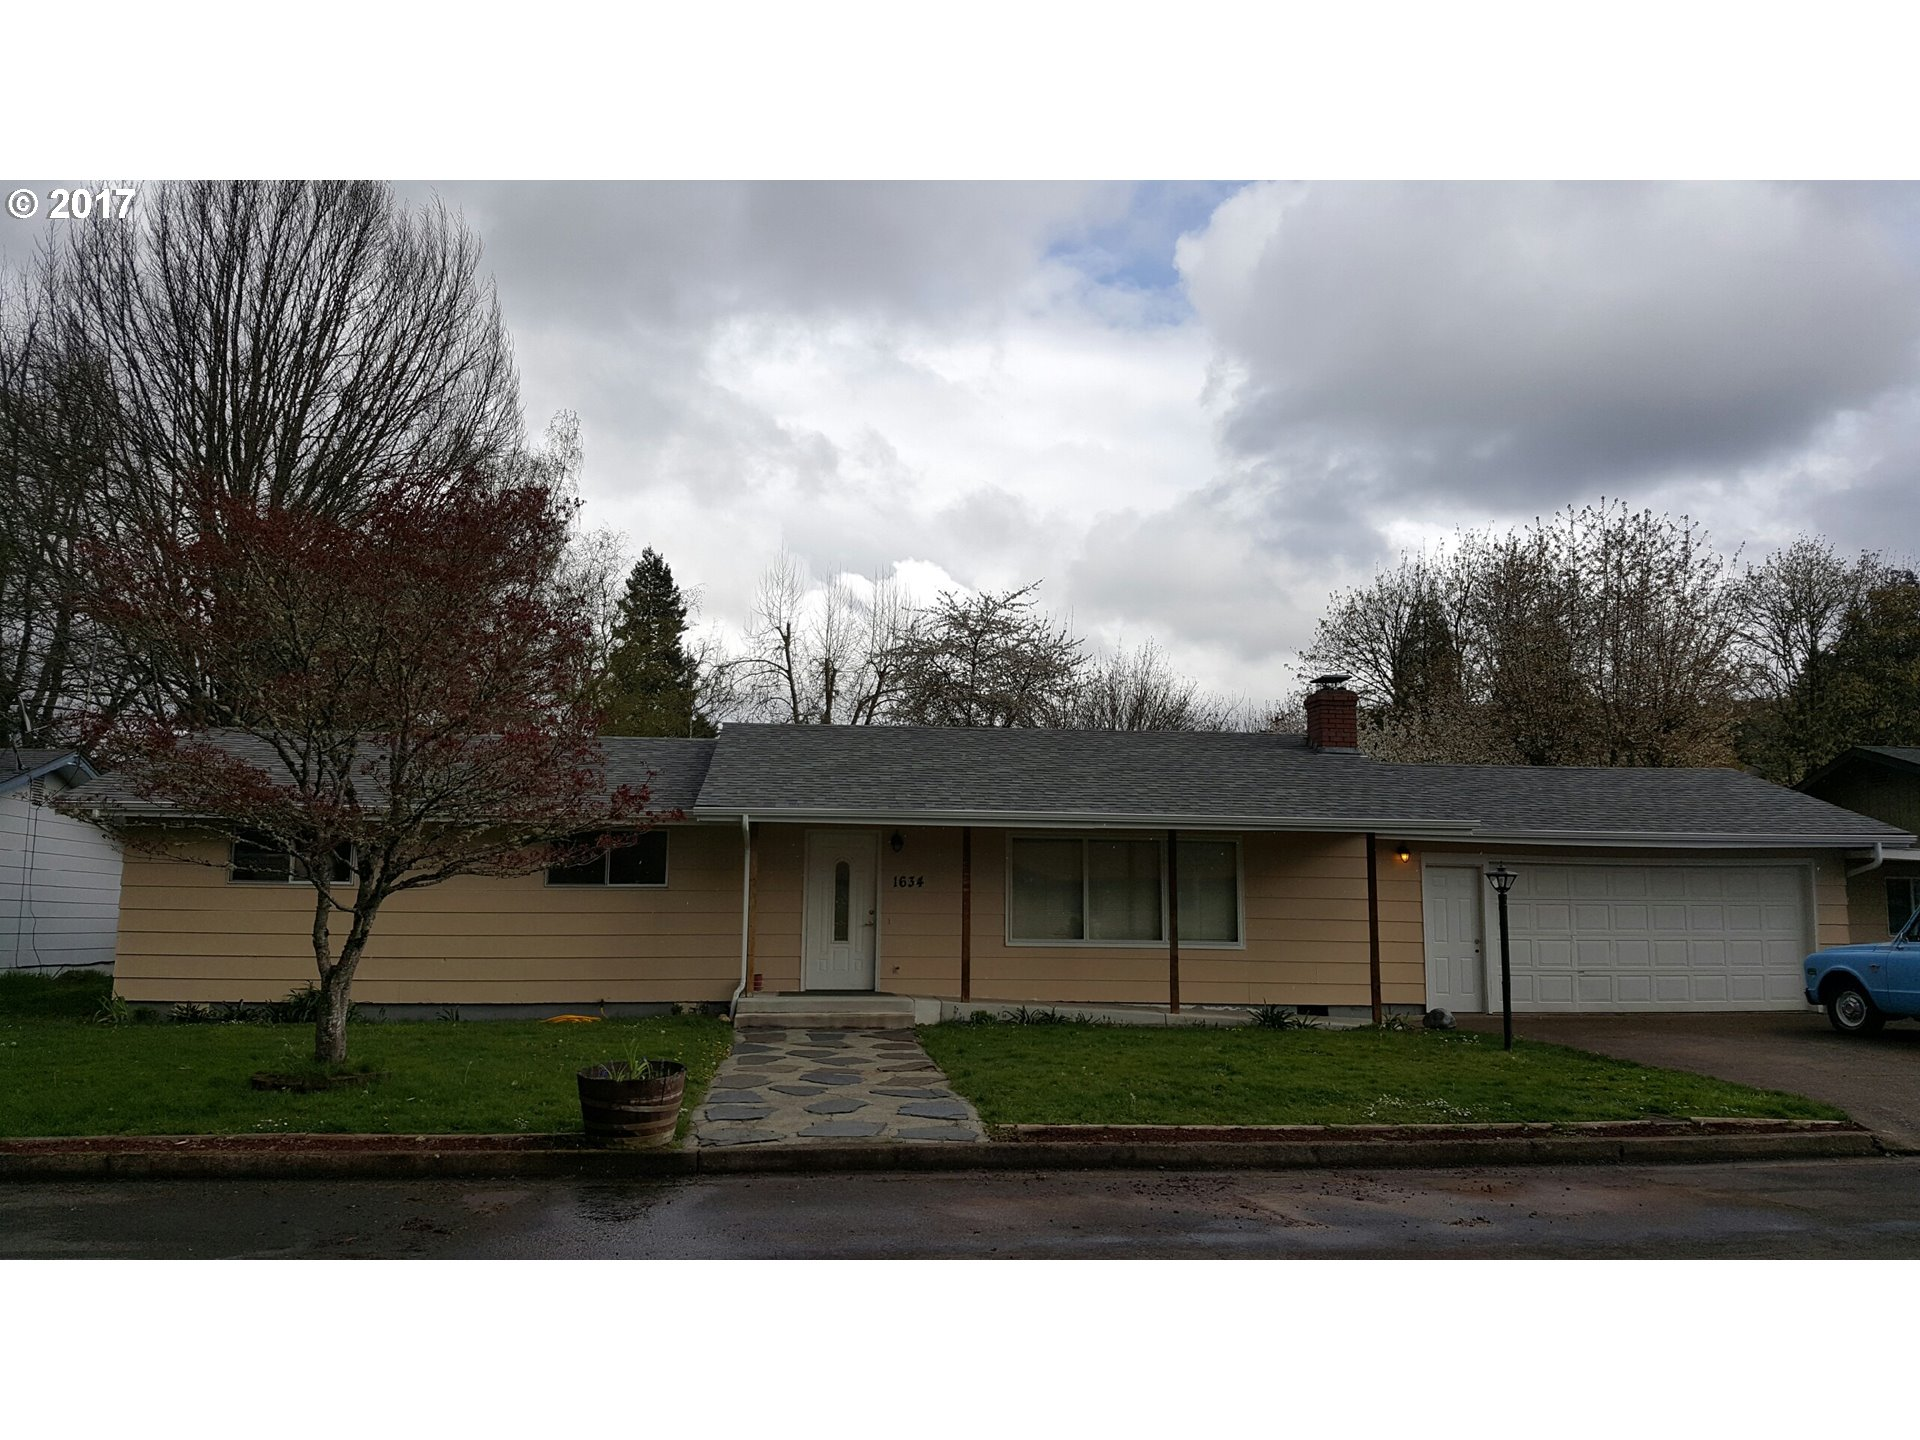 1634 S 5TH ST, Cottage Grove, OR 97424